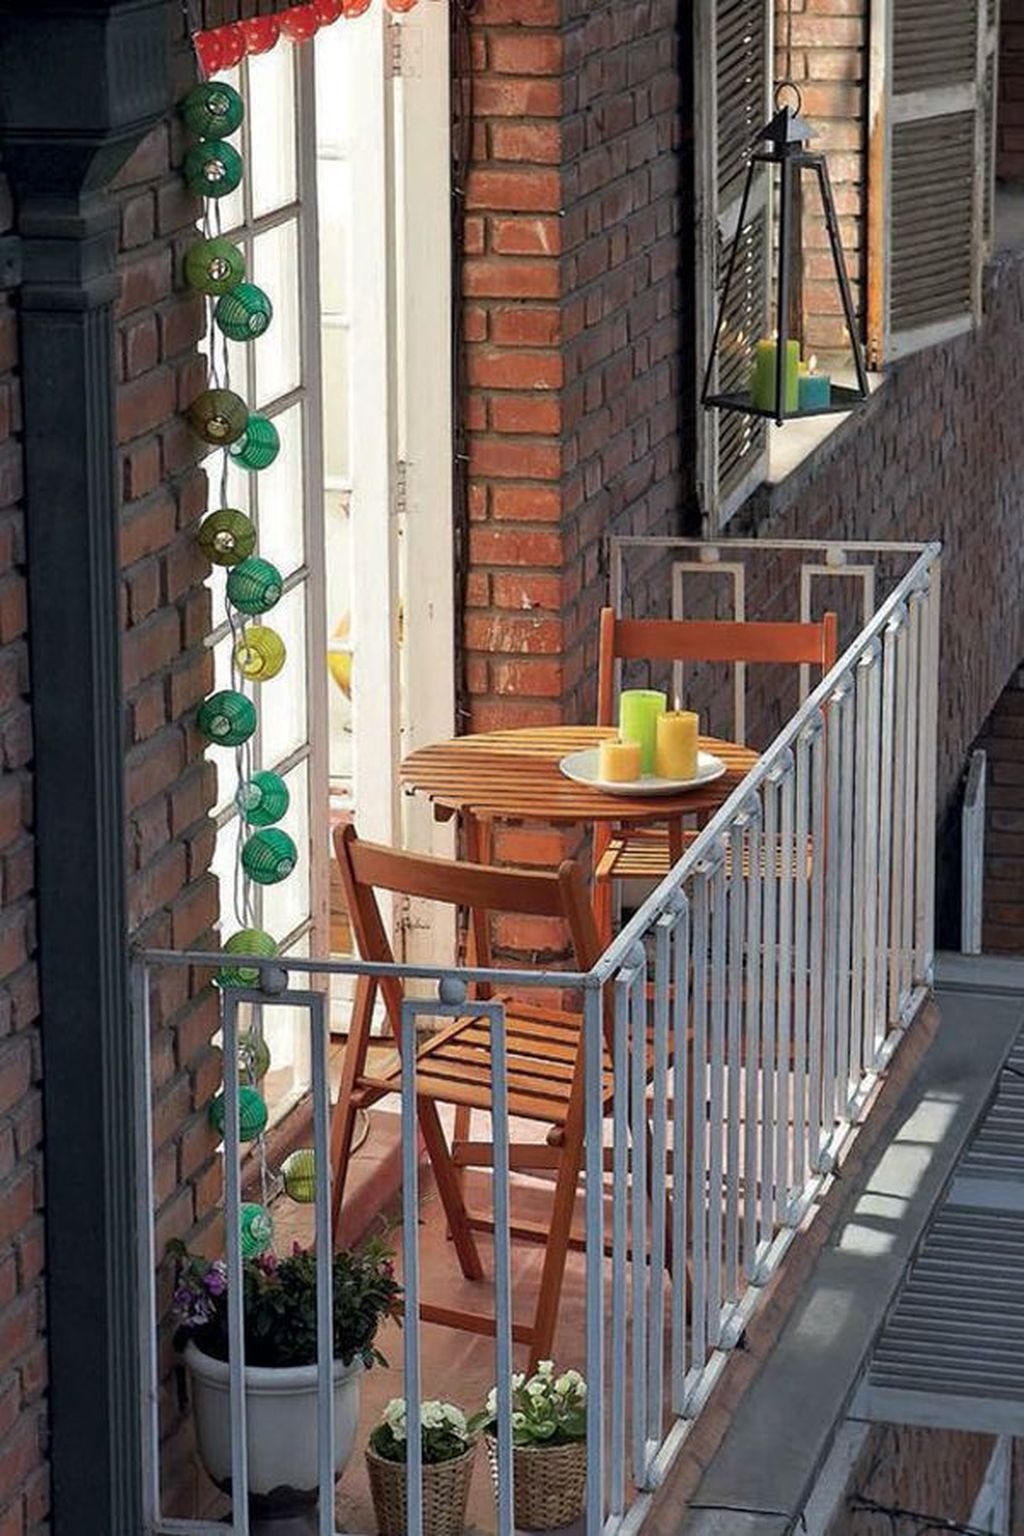 80+ Luxury Apartment Balcony Decorating Ideas on A Budget ...